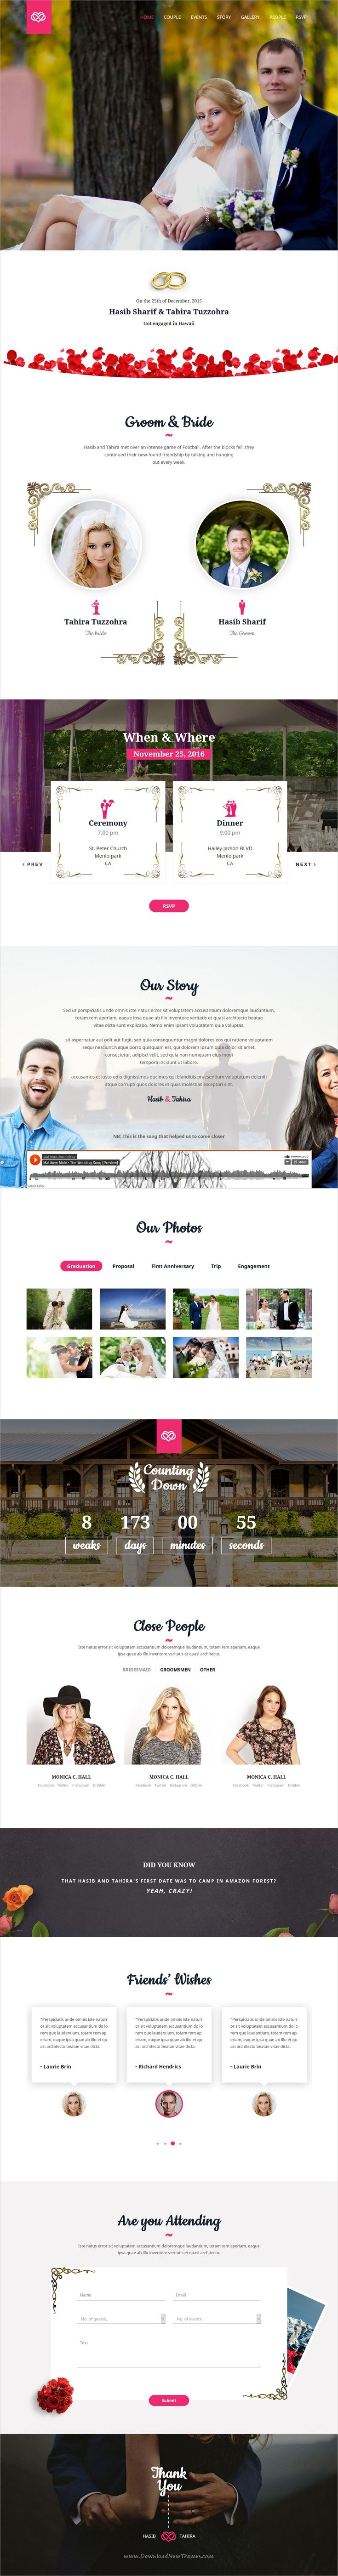 Rose is clean and modern design responsive #HTML5 template for #wedding event website with 20+ homepage layouts download now > https://themeforest.net/item/rose-wedding-responsive-html5-template/19931553?ref=Datasata